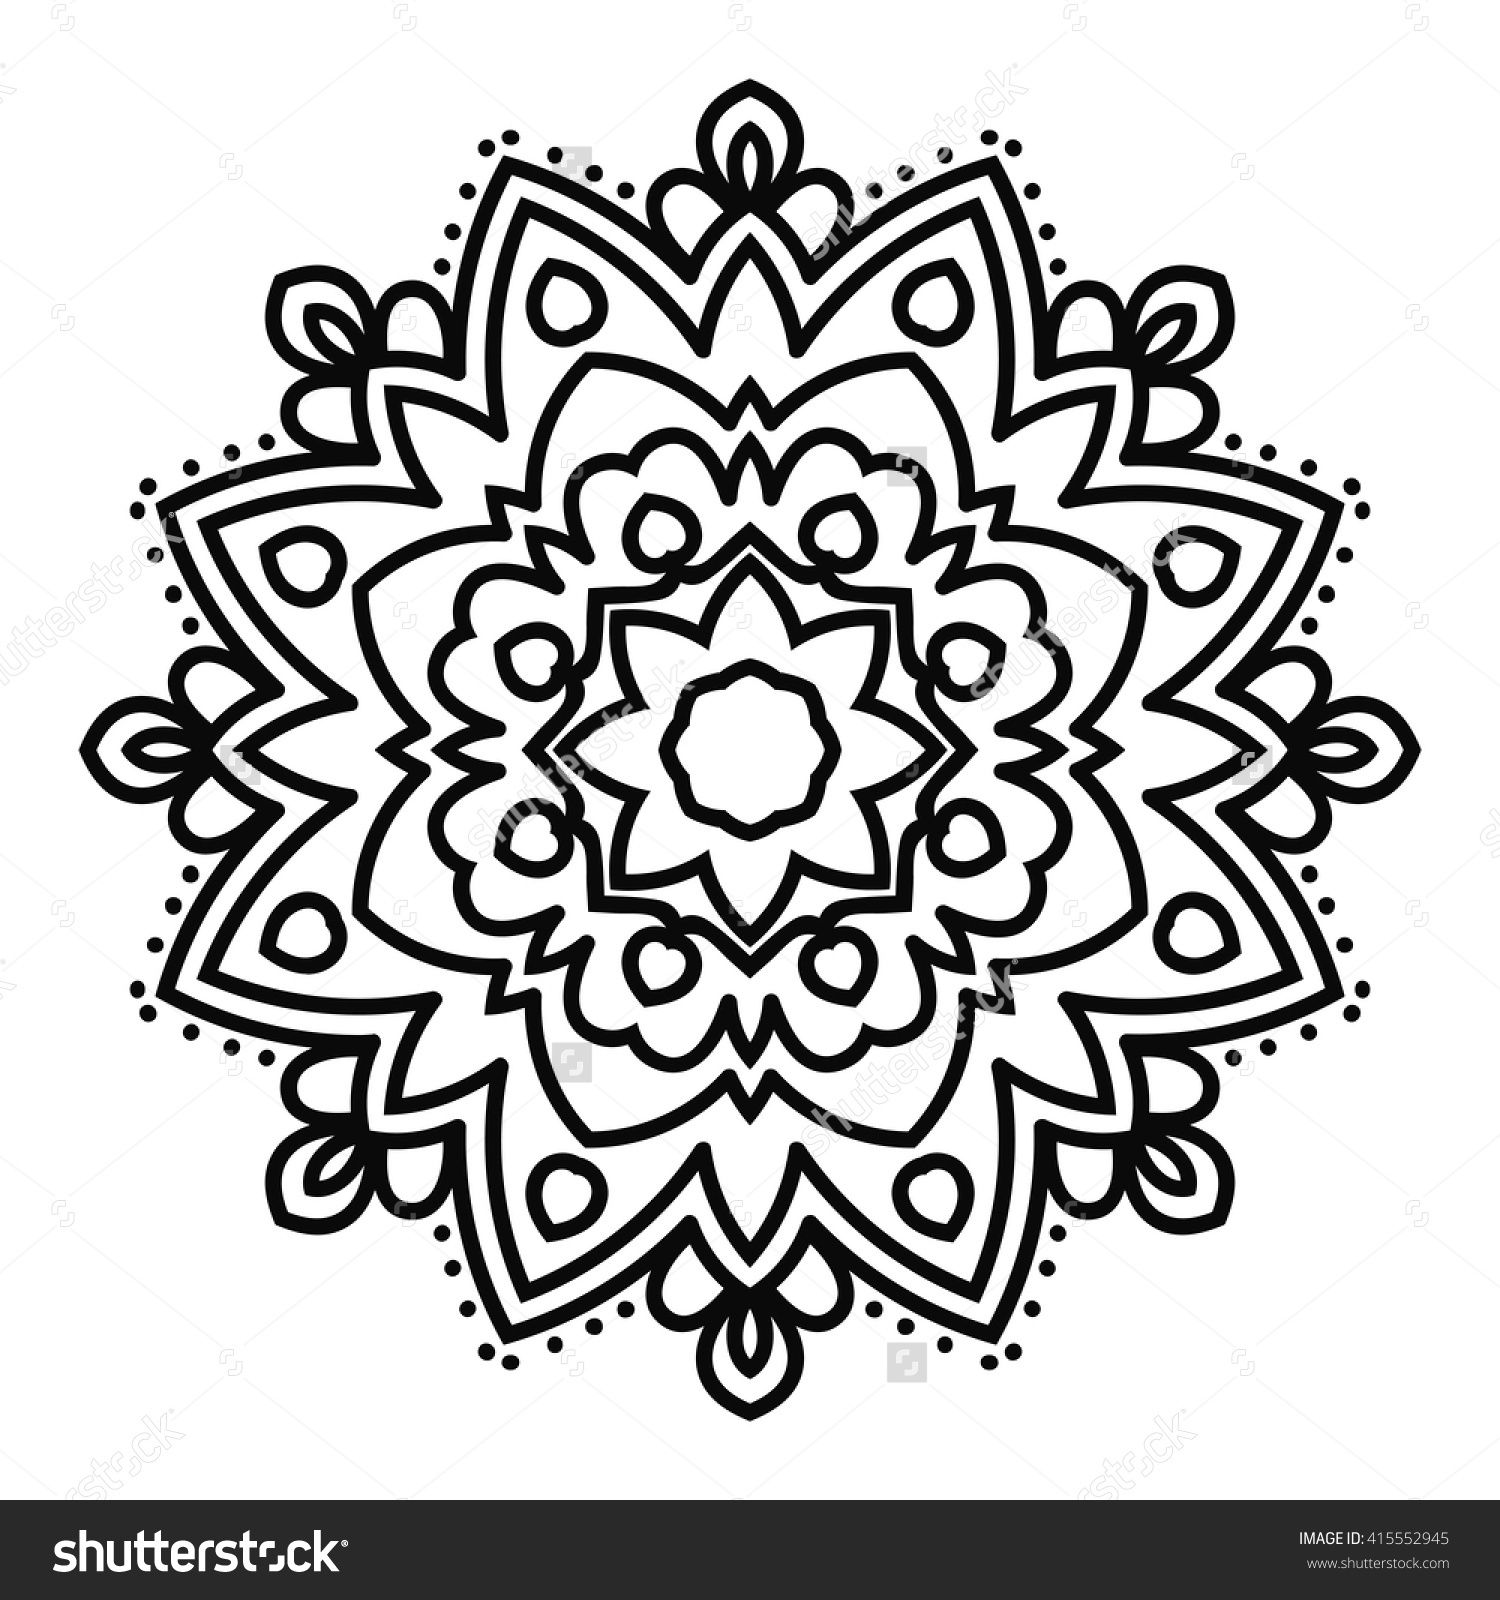 Ornamental round doodle flower isolated on white background. Black ...